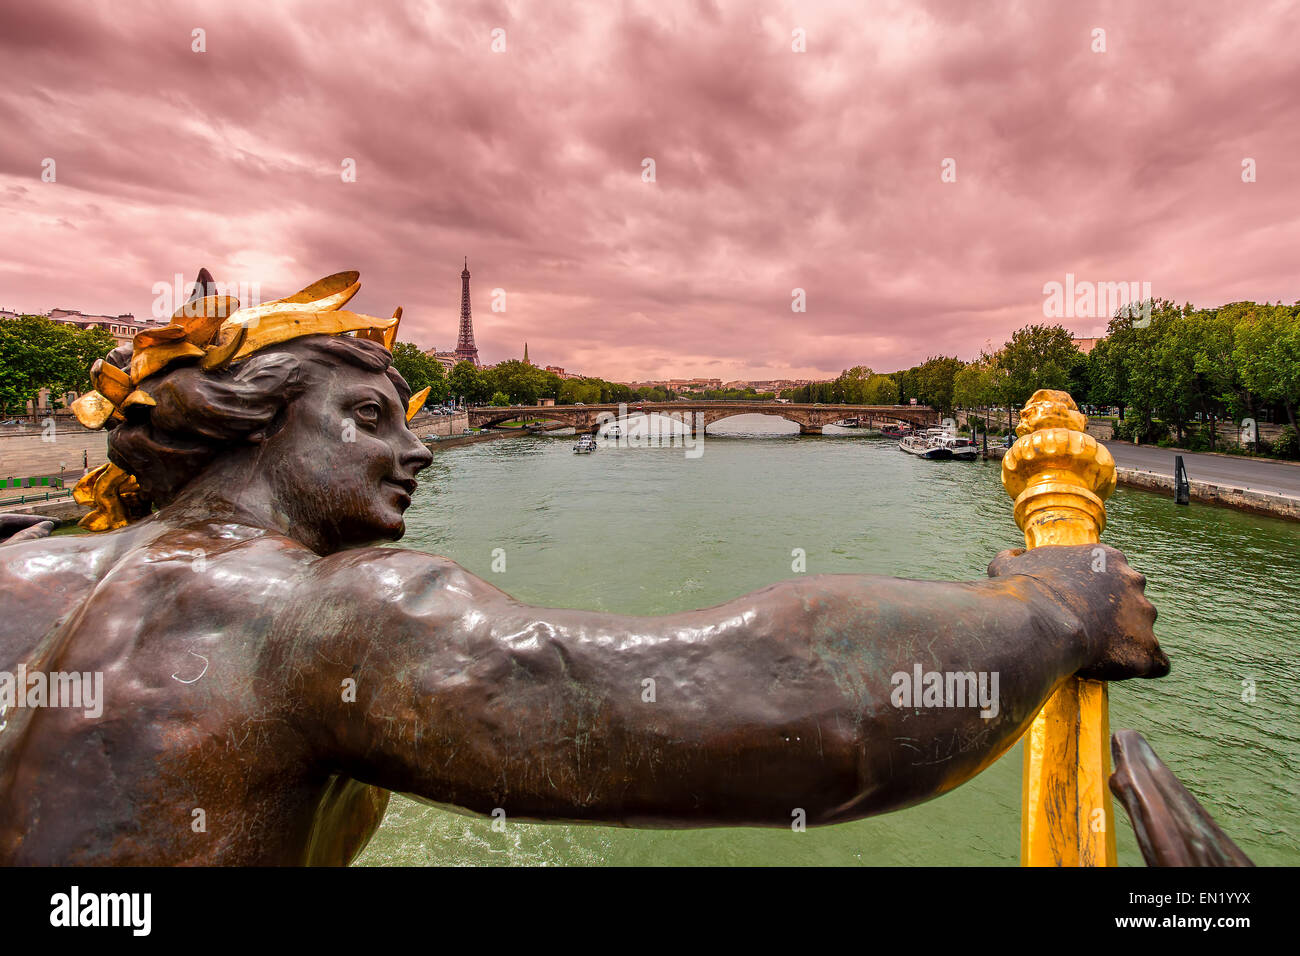 View of Seine river and Eiffel Tower on background under cloudy sky from Alexander the III bridge in Paris, France. - Stock Image